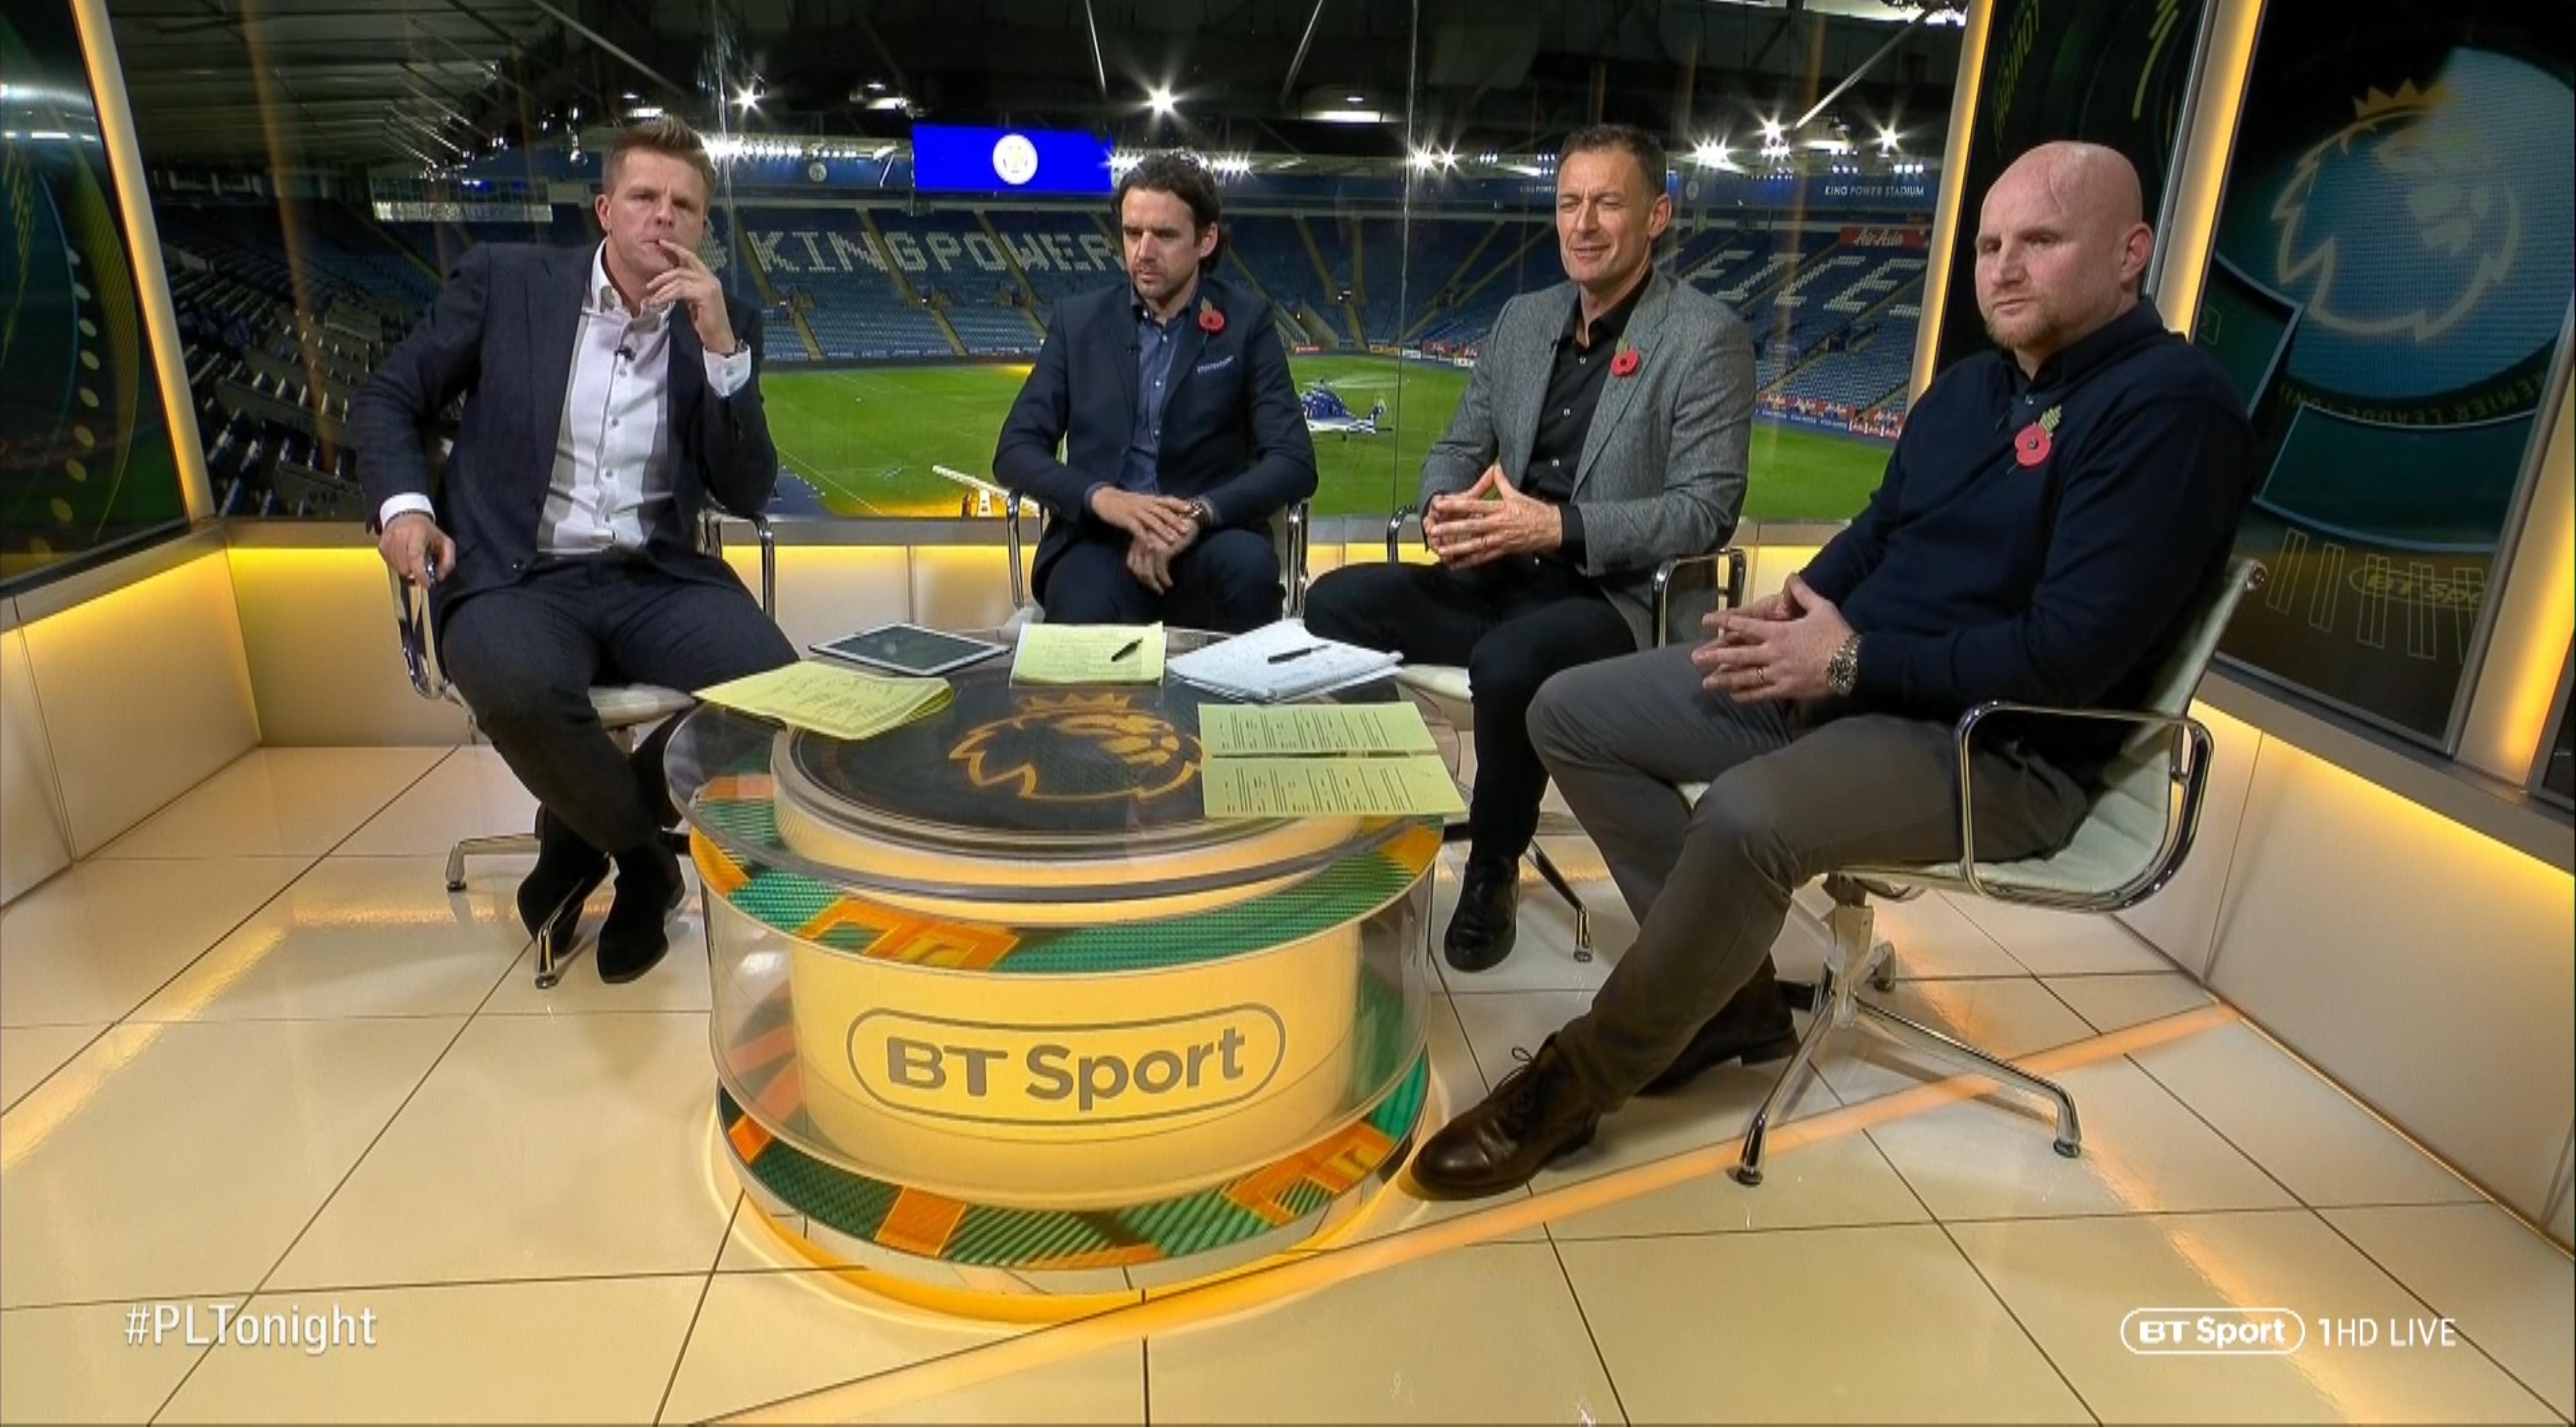 Host Jake Humphrey and pundits on Premier League Tonight discussed the chopper as it took off